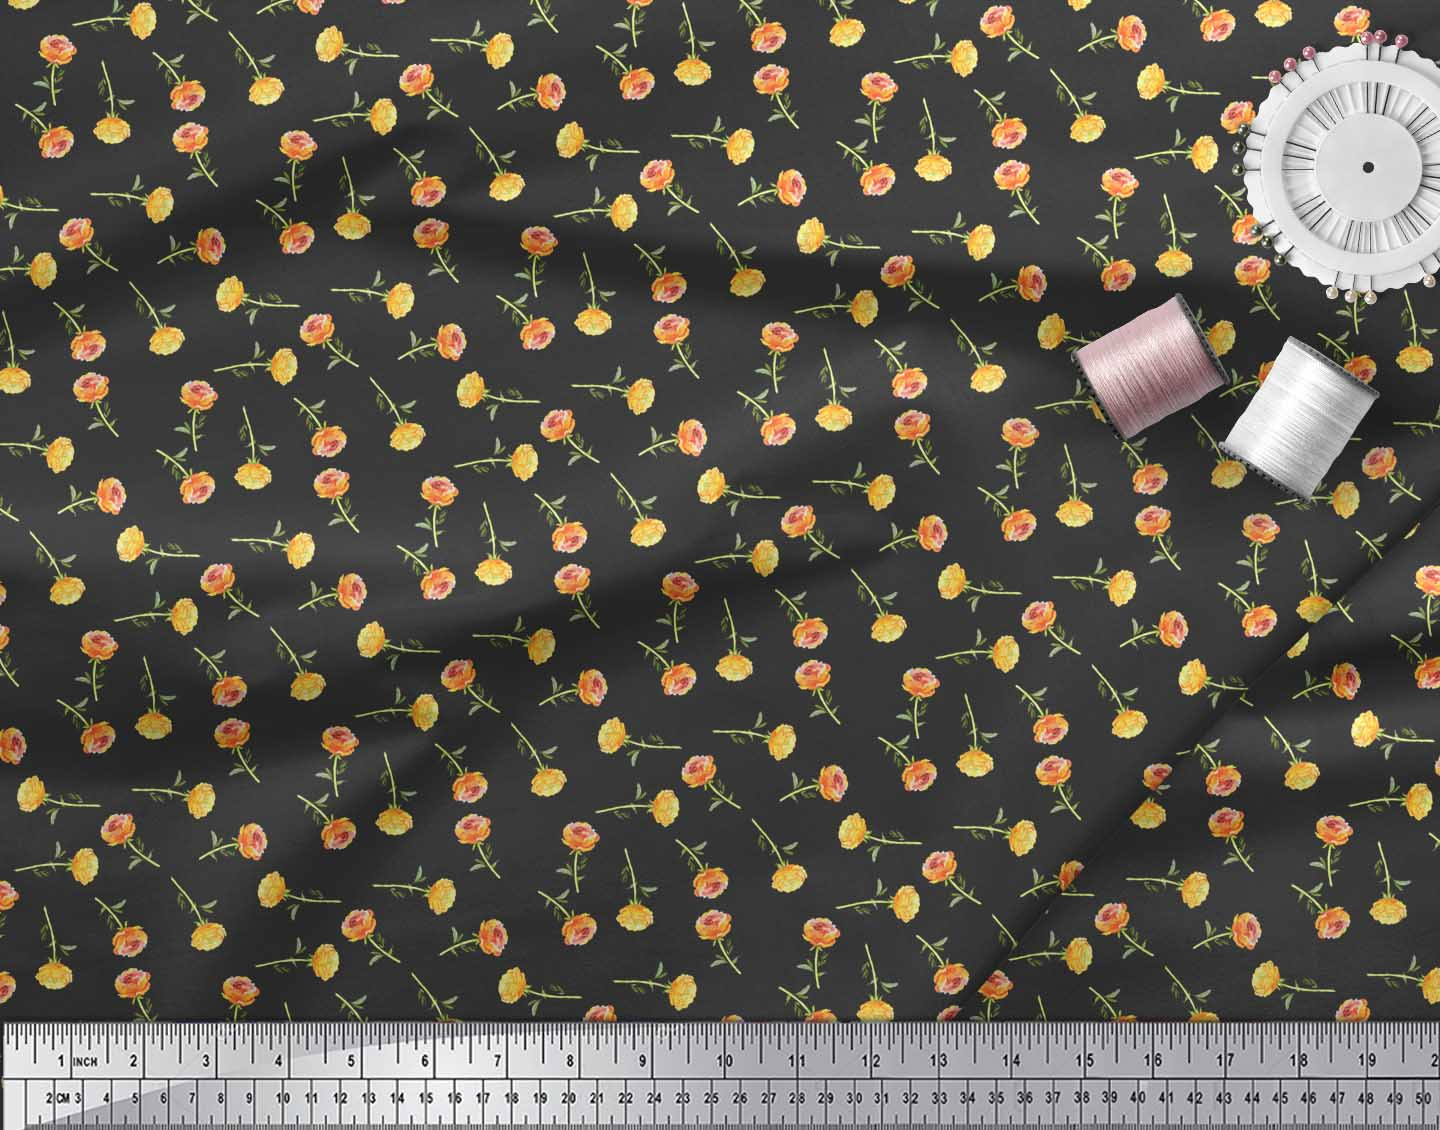 Soimoi-Black-Cotton-Poplin-Fabric-Rose-Floral-Print-Fabric-by-the-SIn thumbnail 4